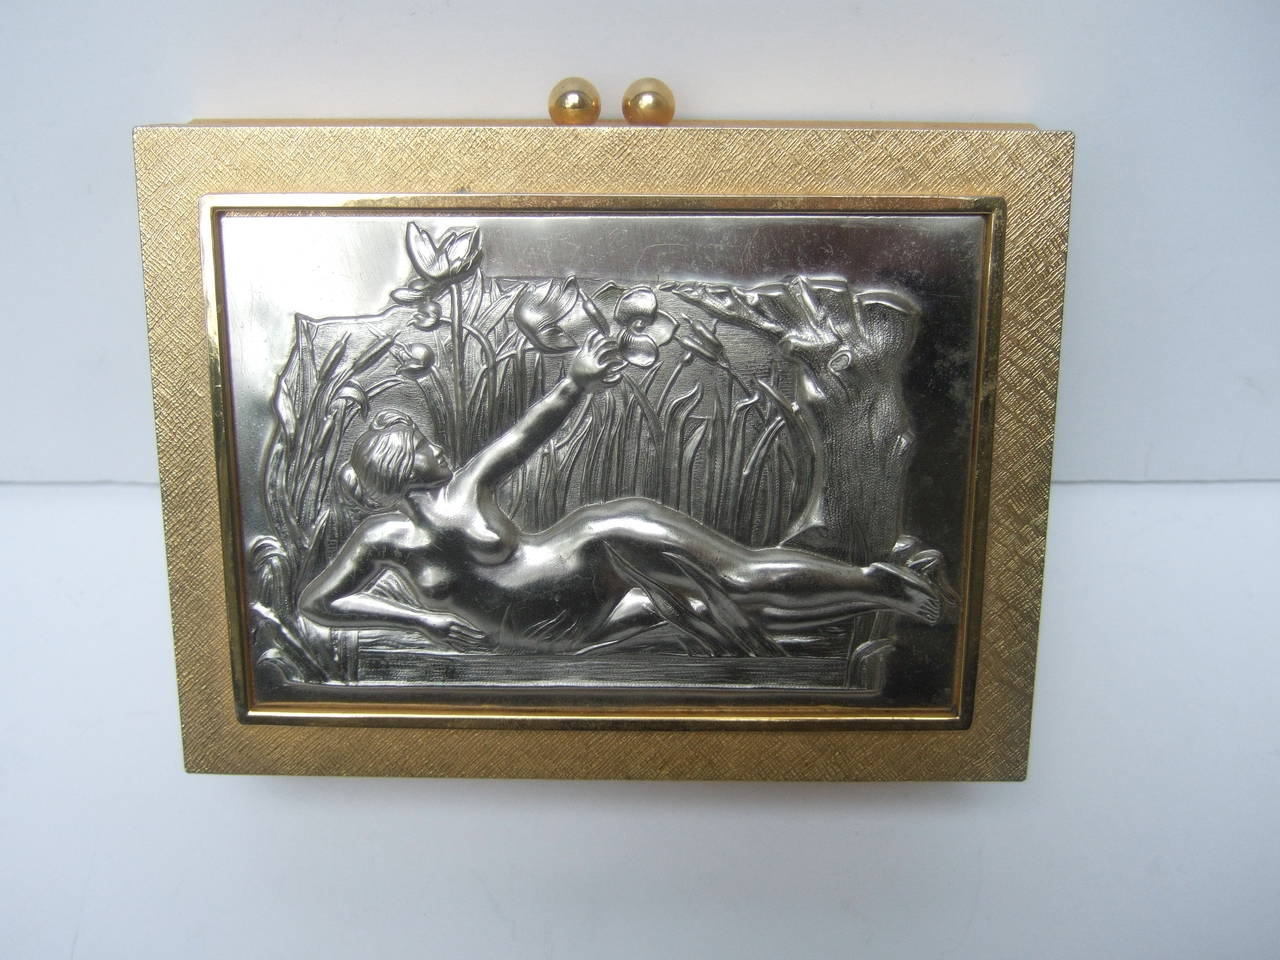 Exquisite gilt metal evening bag designed by Harry Rosenfeld c 1970